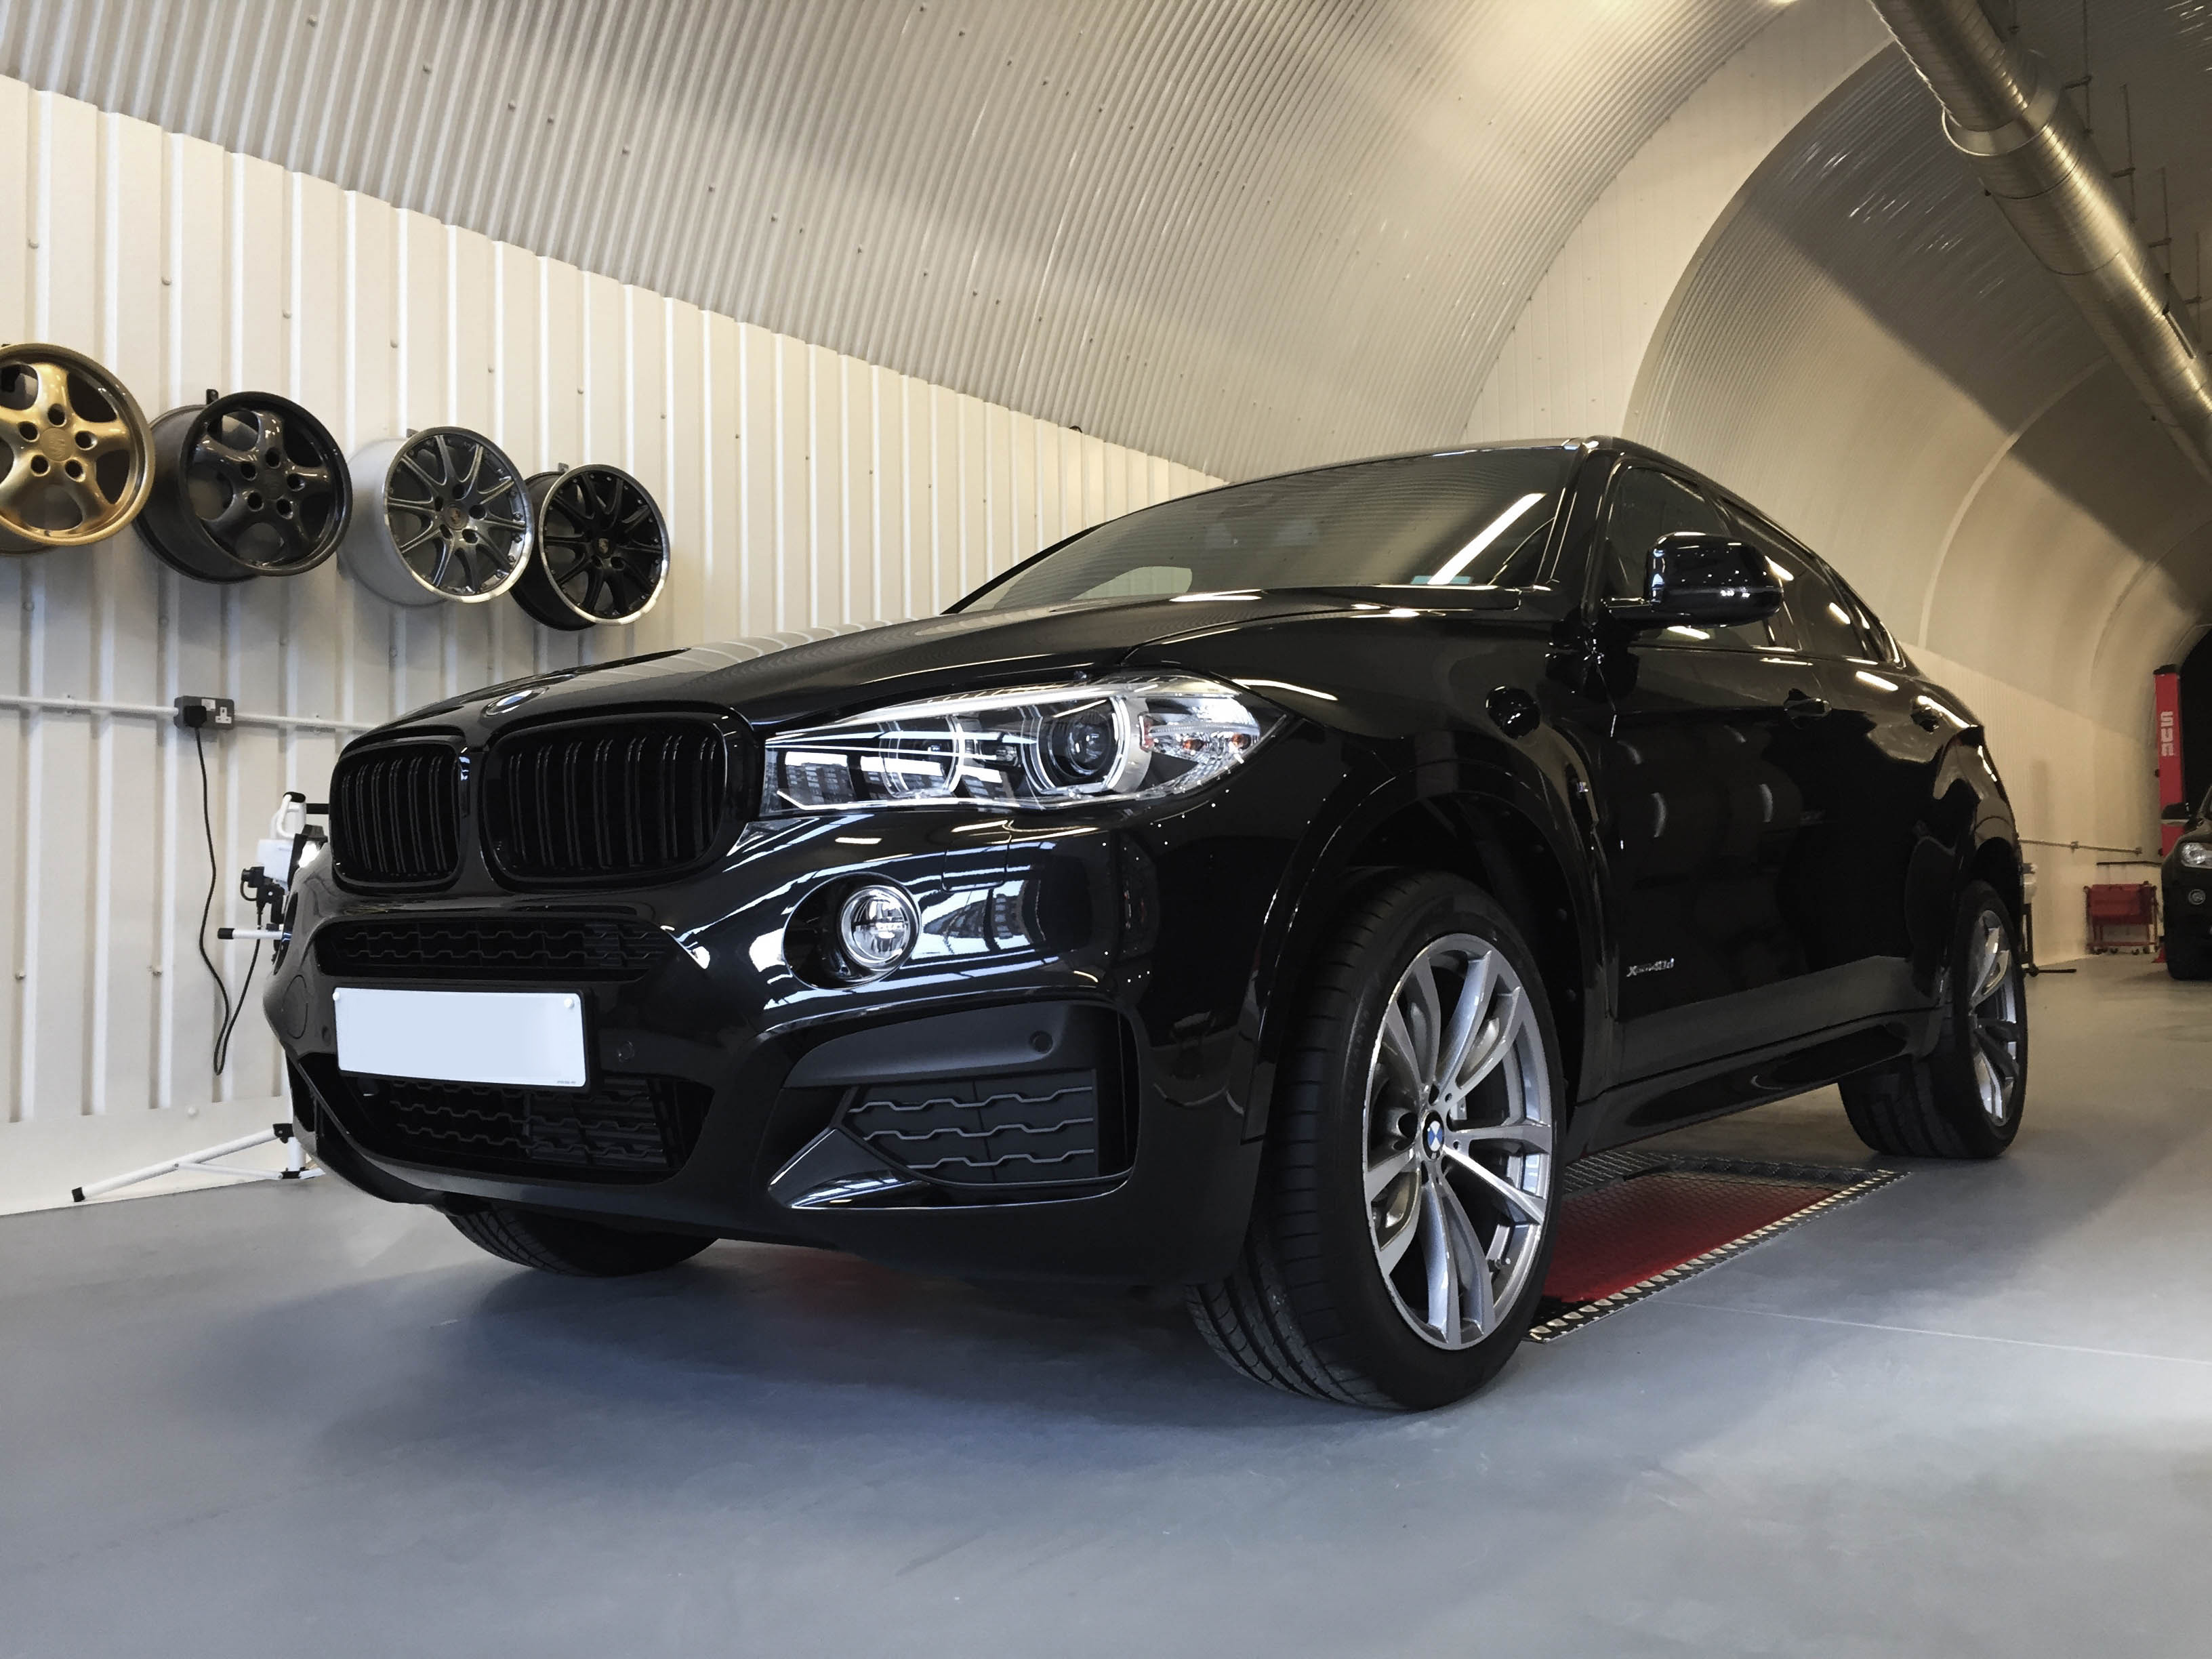 BMW X6 – Front passenger side